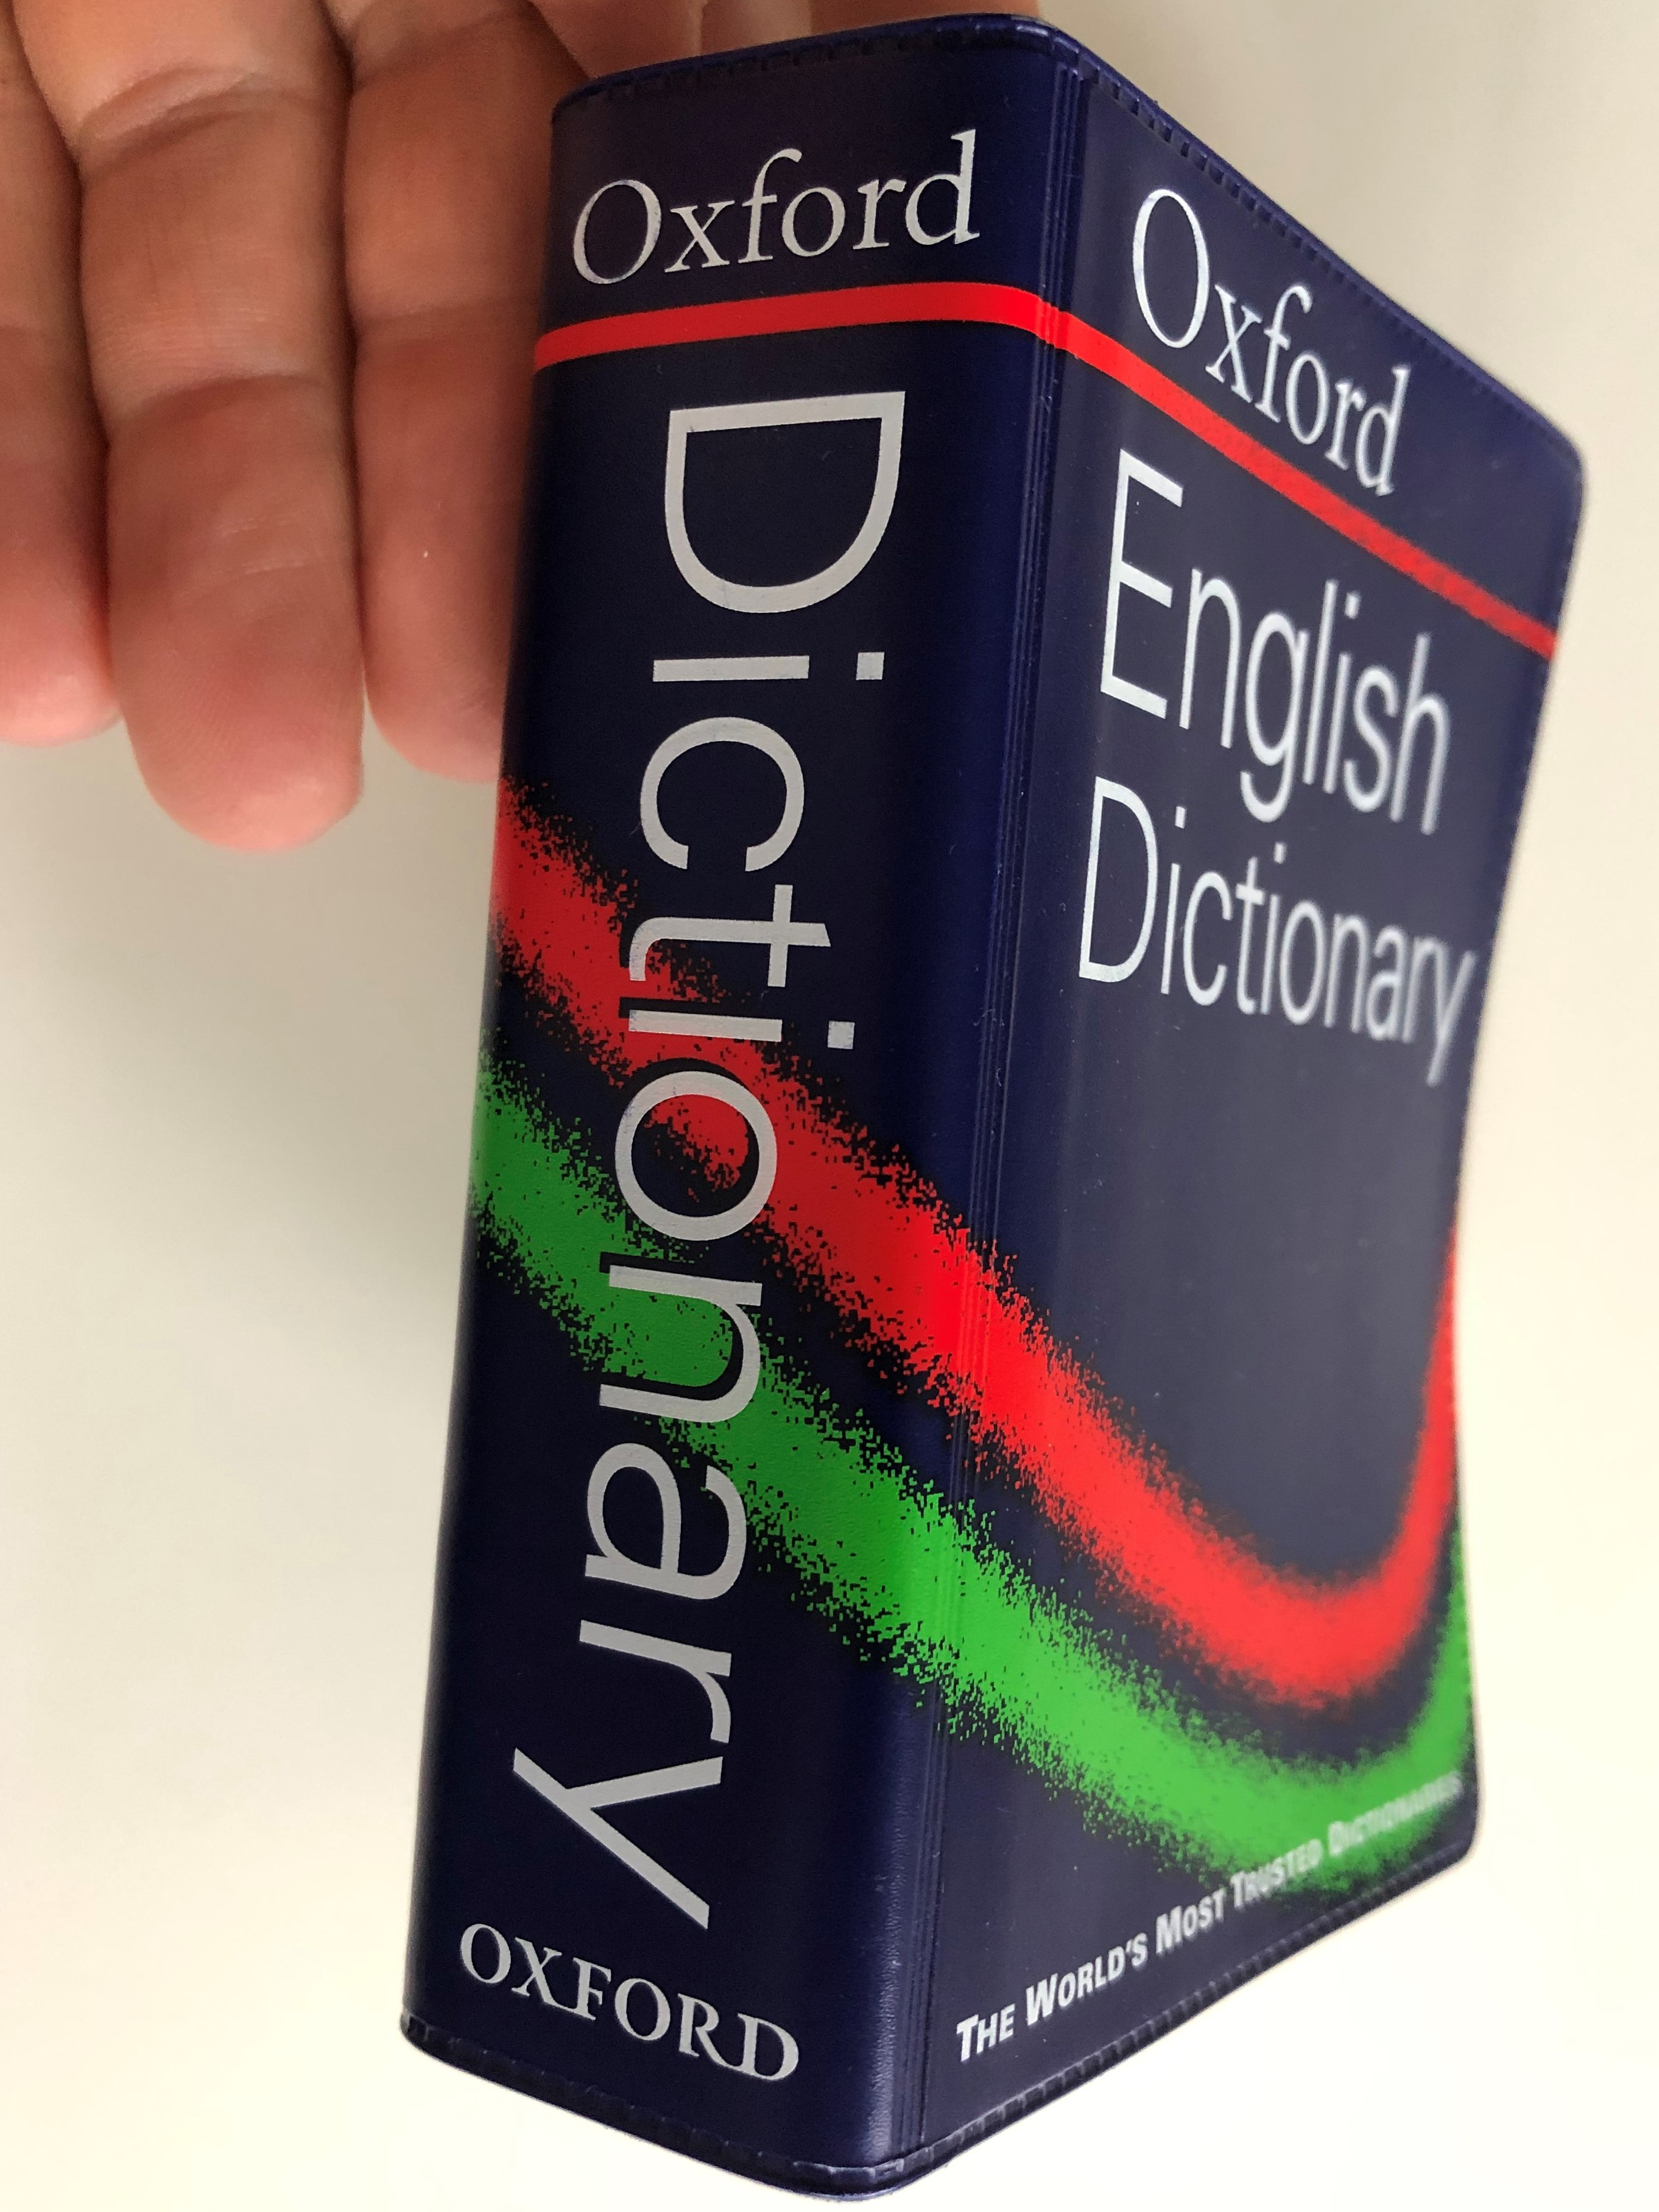 oxford-english-dictionary-the-world-s-most-trusted-dictionaries-essential-reliable-practical-oxford-university-press-2-.jpg